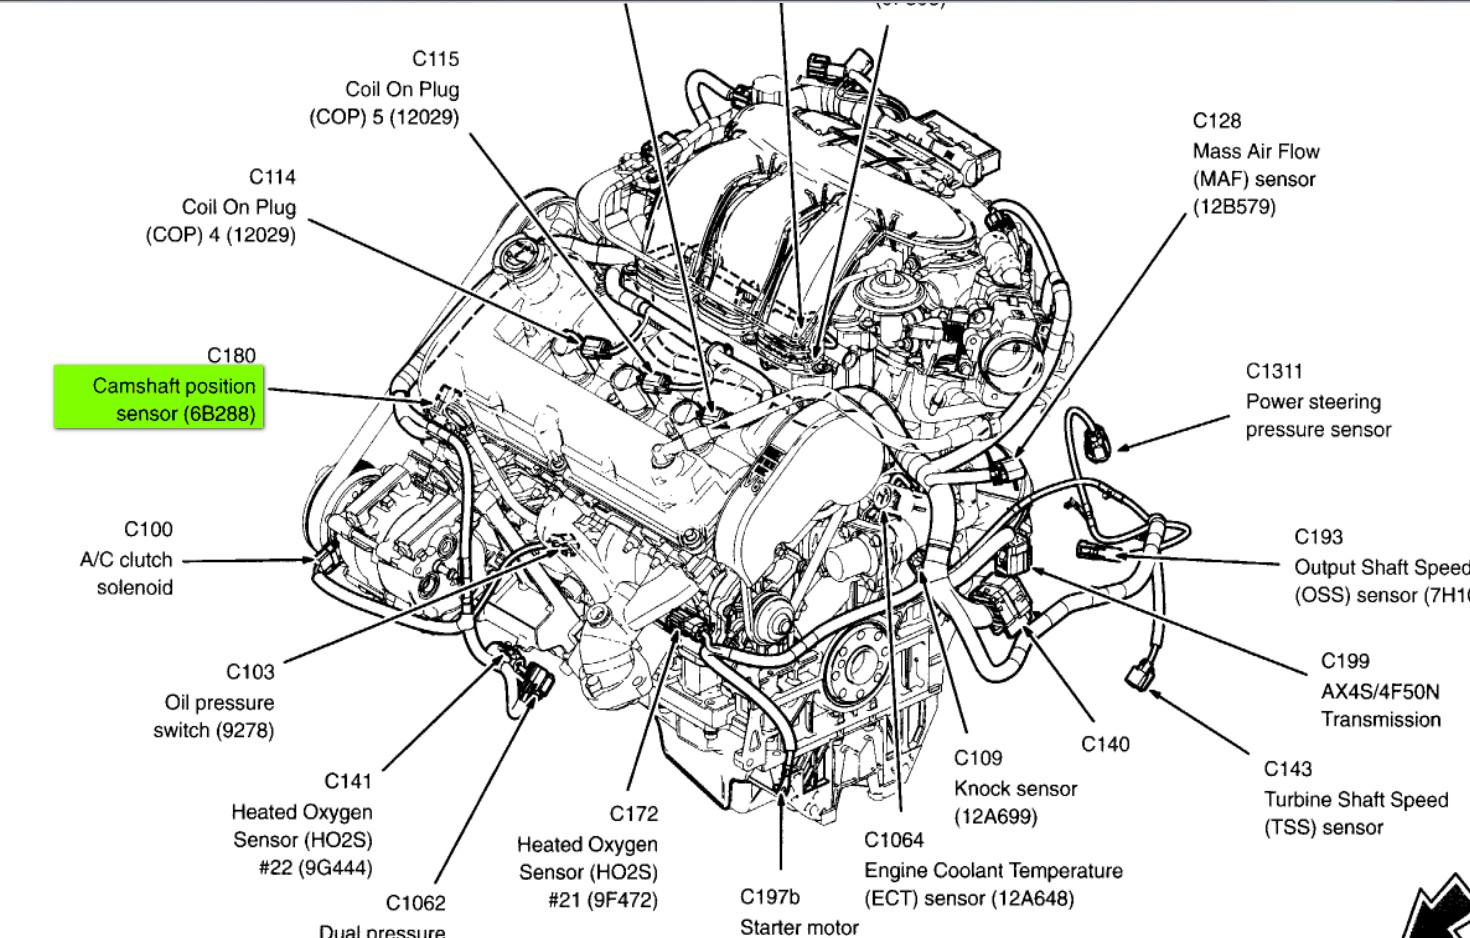 2012 Toyota Highlander Cruise Control Fuse Location Search For Box 2005 Ford Escape Timing Chain Diagram Wiring And Venza